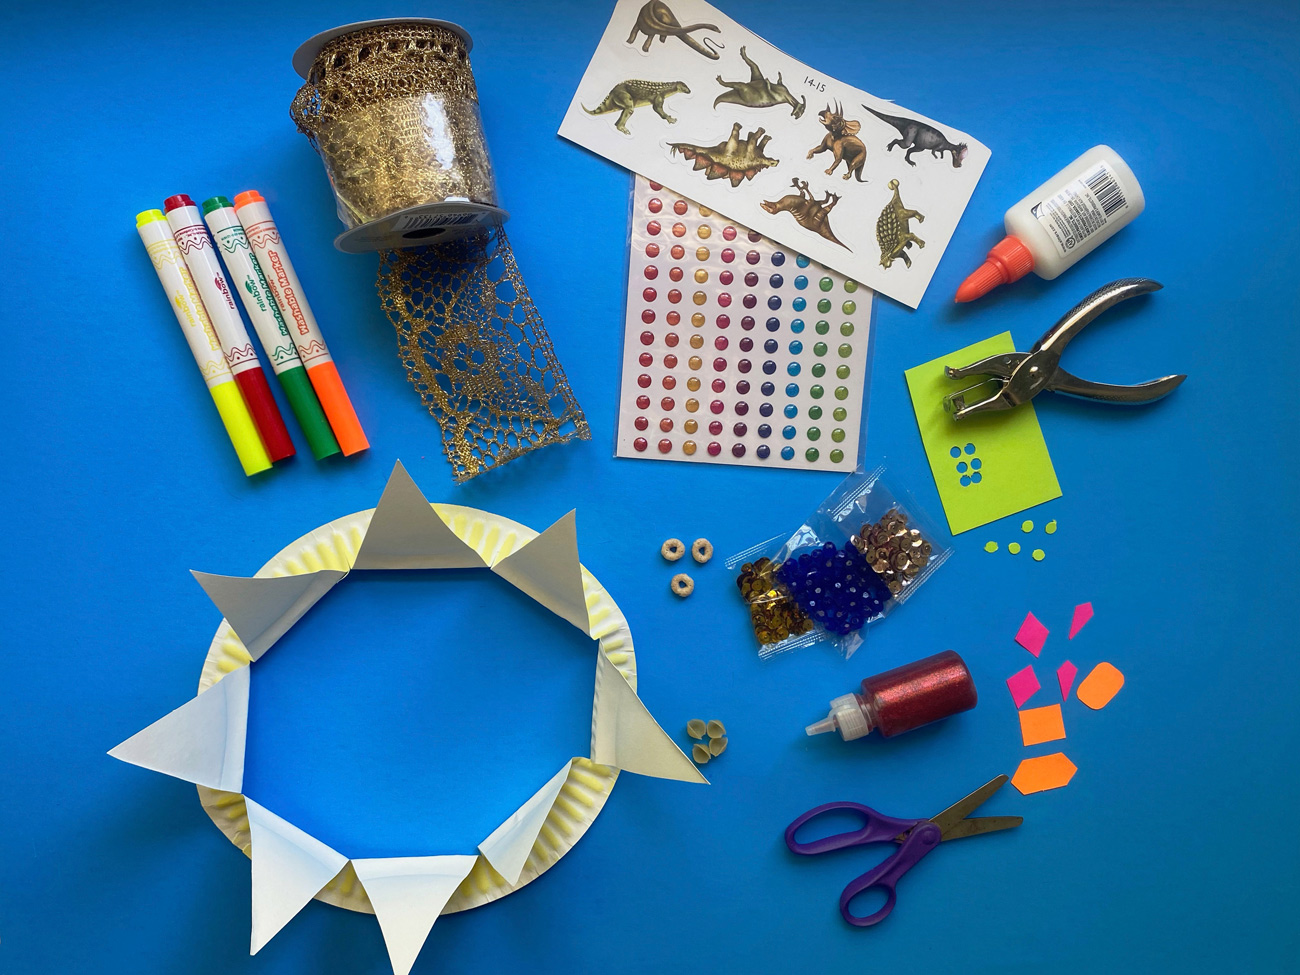 A completed crown sits on a blue surface alongside pens, stickers, and other crafting materials